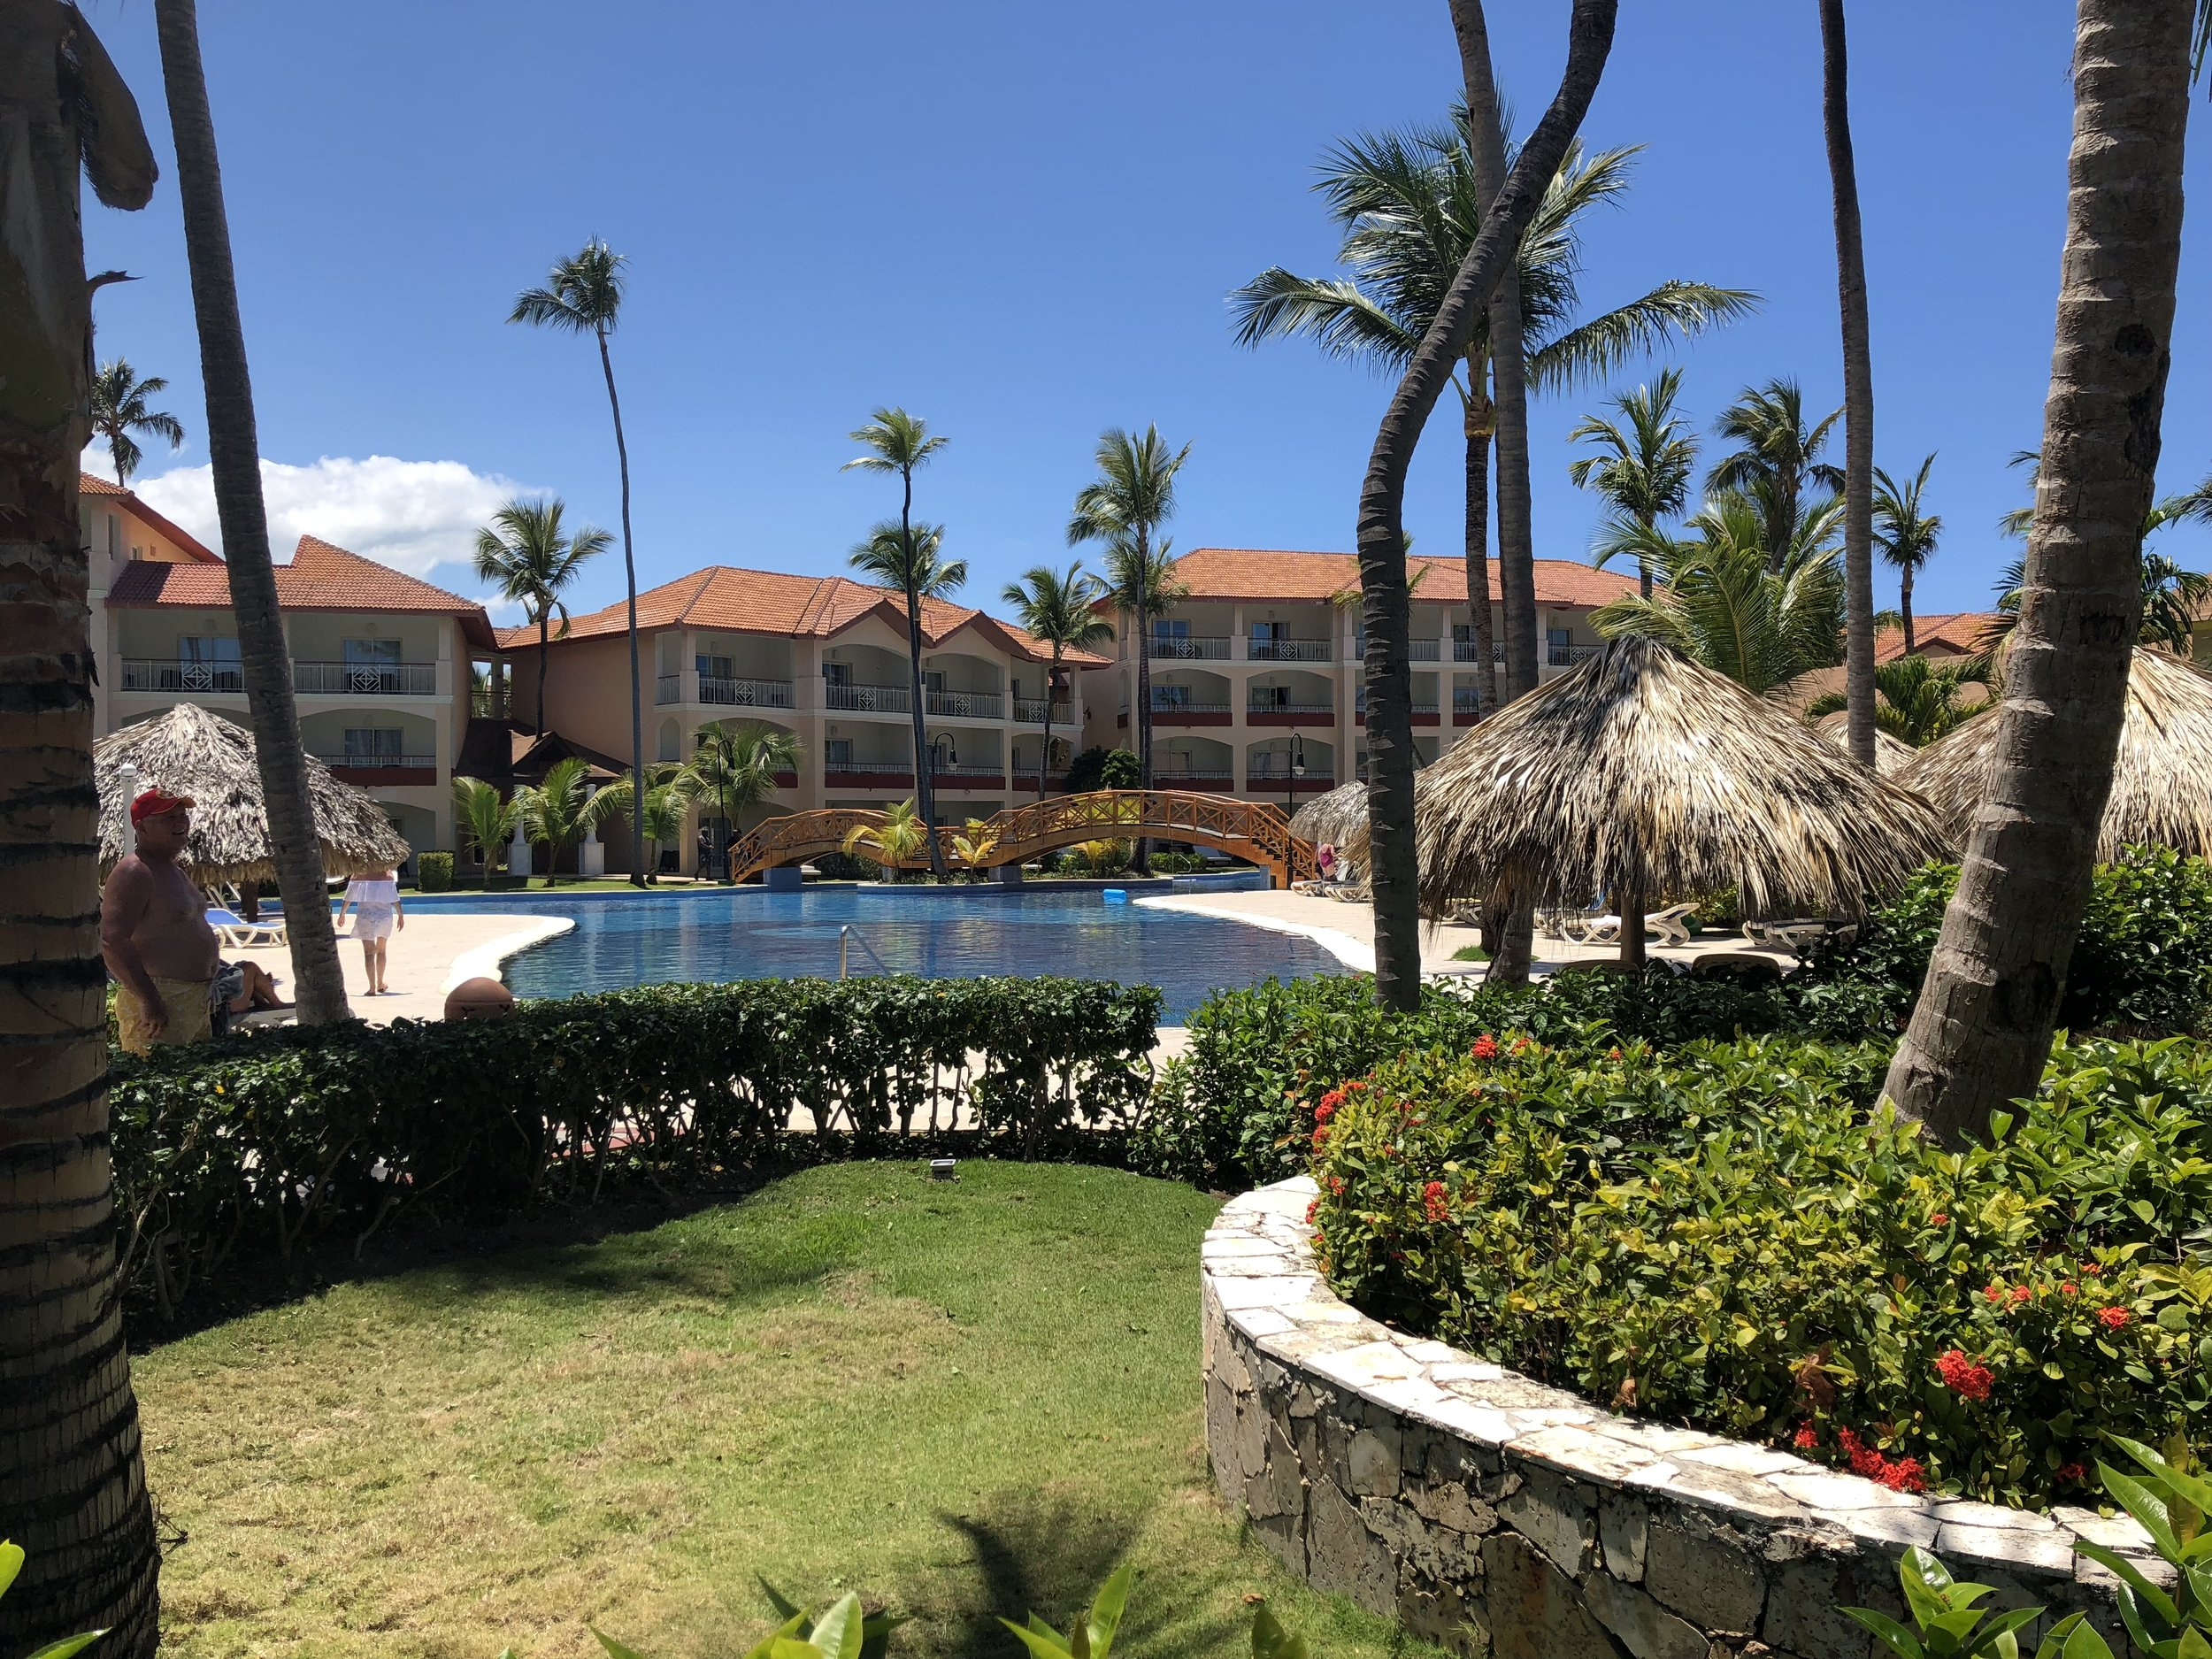 A view of the room on the left side of the resort.